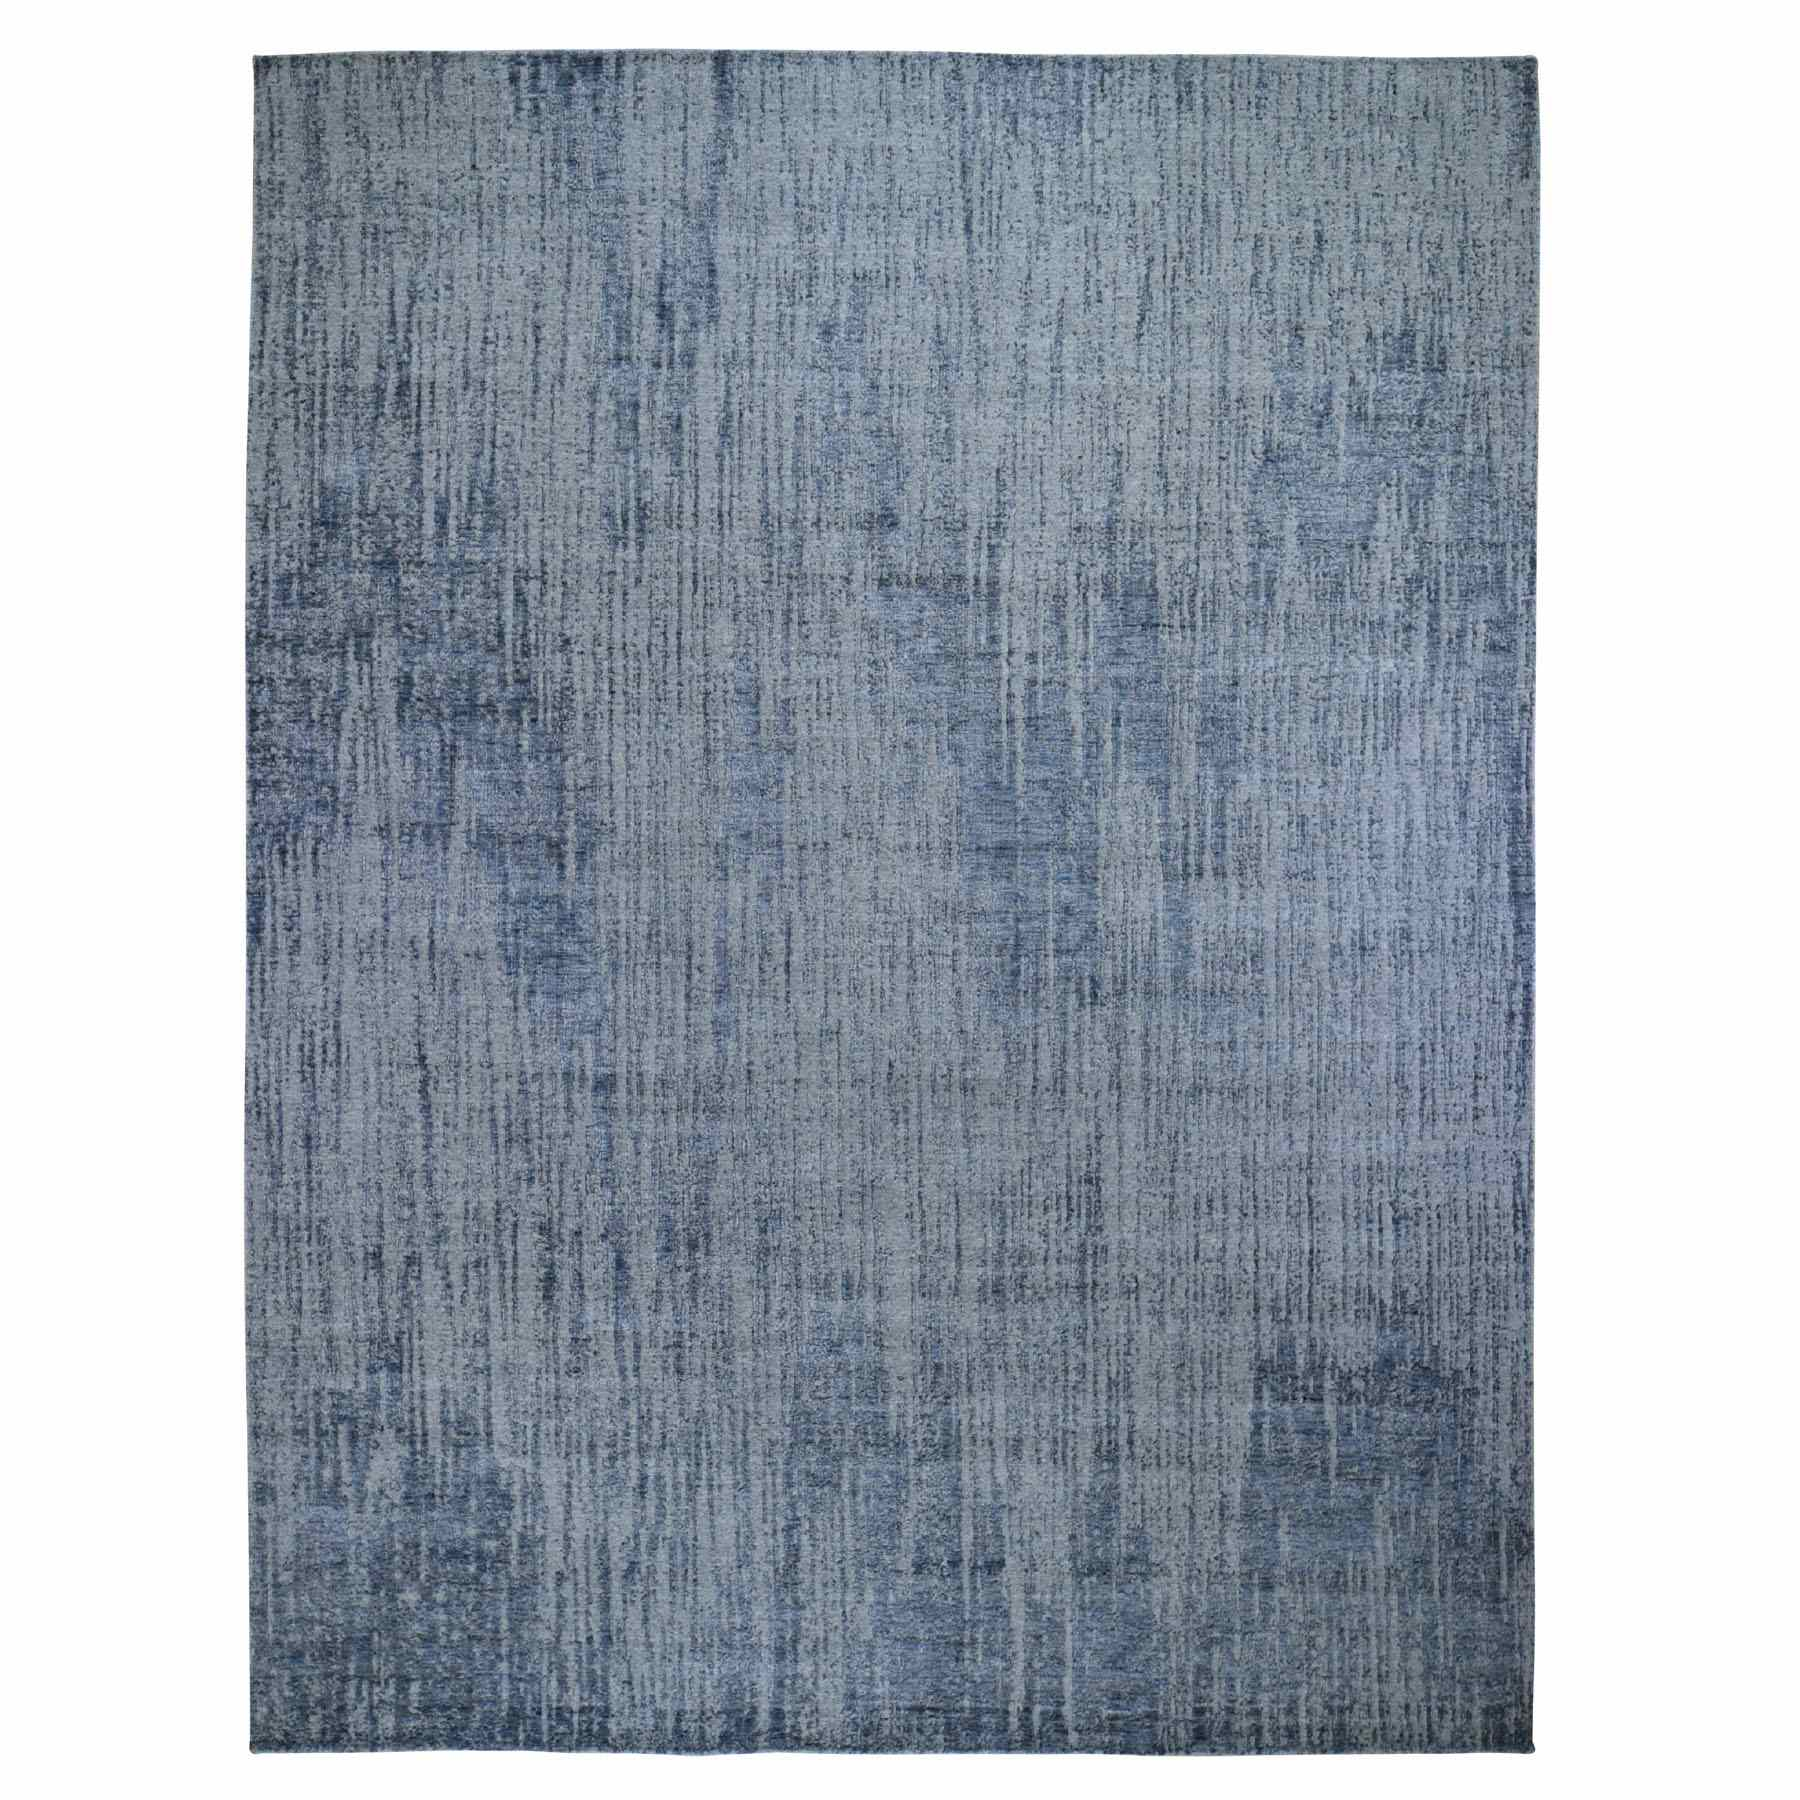 Mid Century Modern Collection Hand Loomed Grey Rug No: 0198910